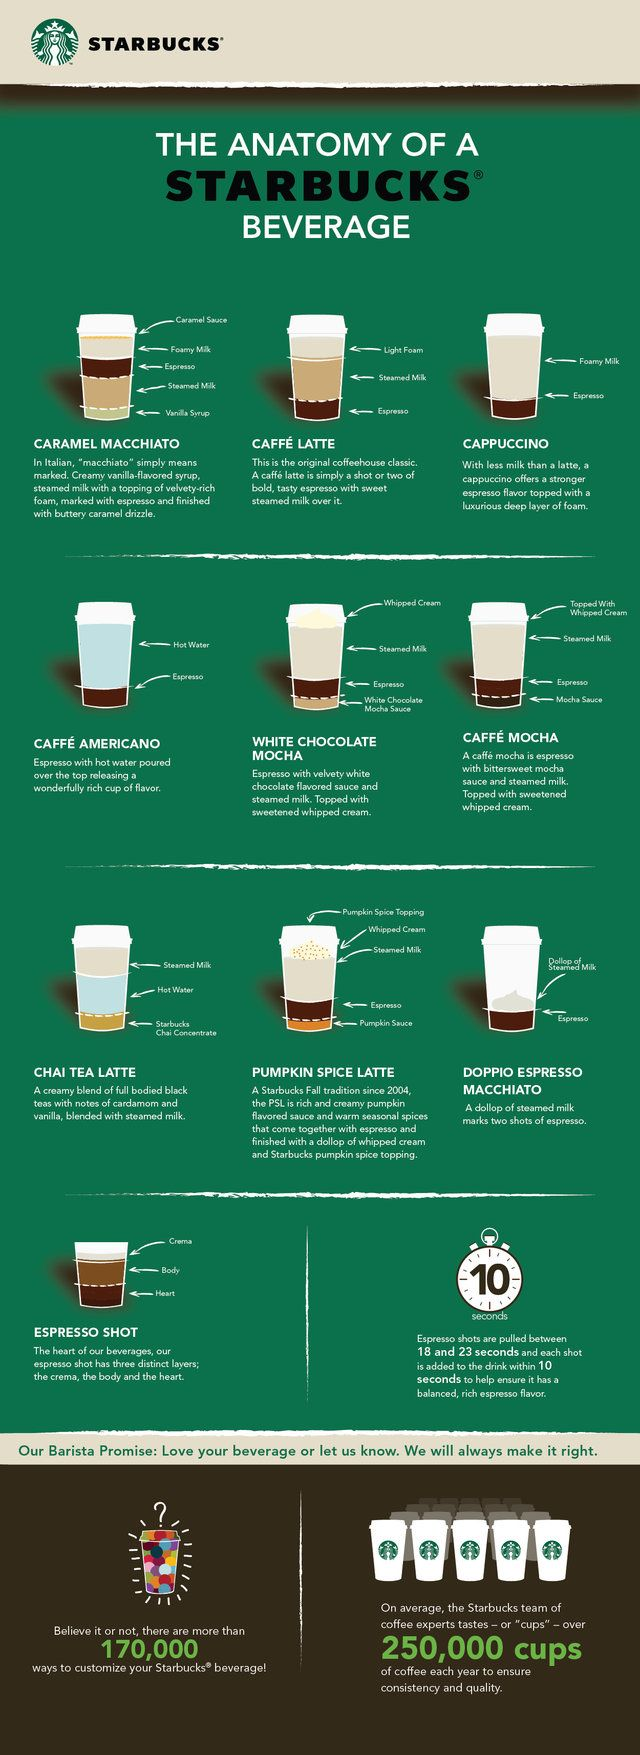 Ever wondered how exactly Starbucks concocts those cookie, caramel, and hazelnut-laden Frappuccinos? Keep on guessing, because we have no clue... but you can check out the scientific breakdown of 10 simpler drinks via this infographic below, which even reveals the sorcery behind the Pumpkin Spice Latte.